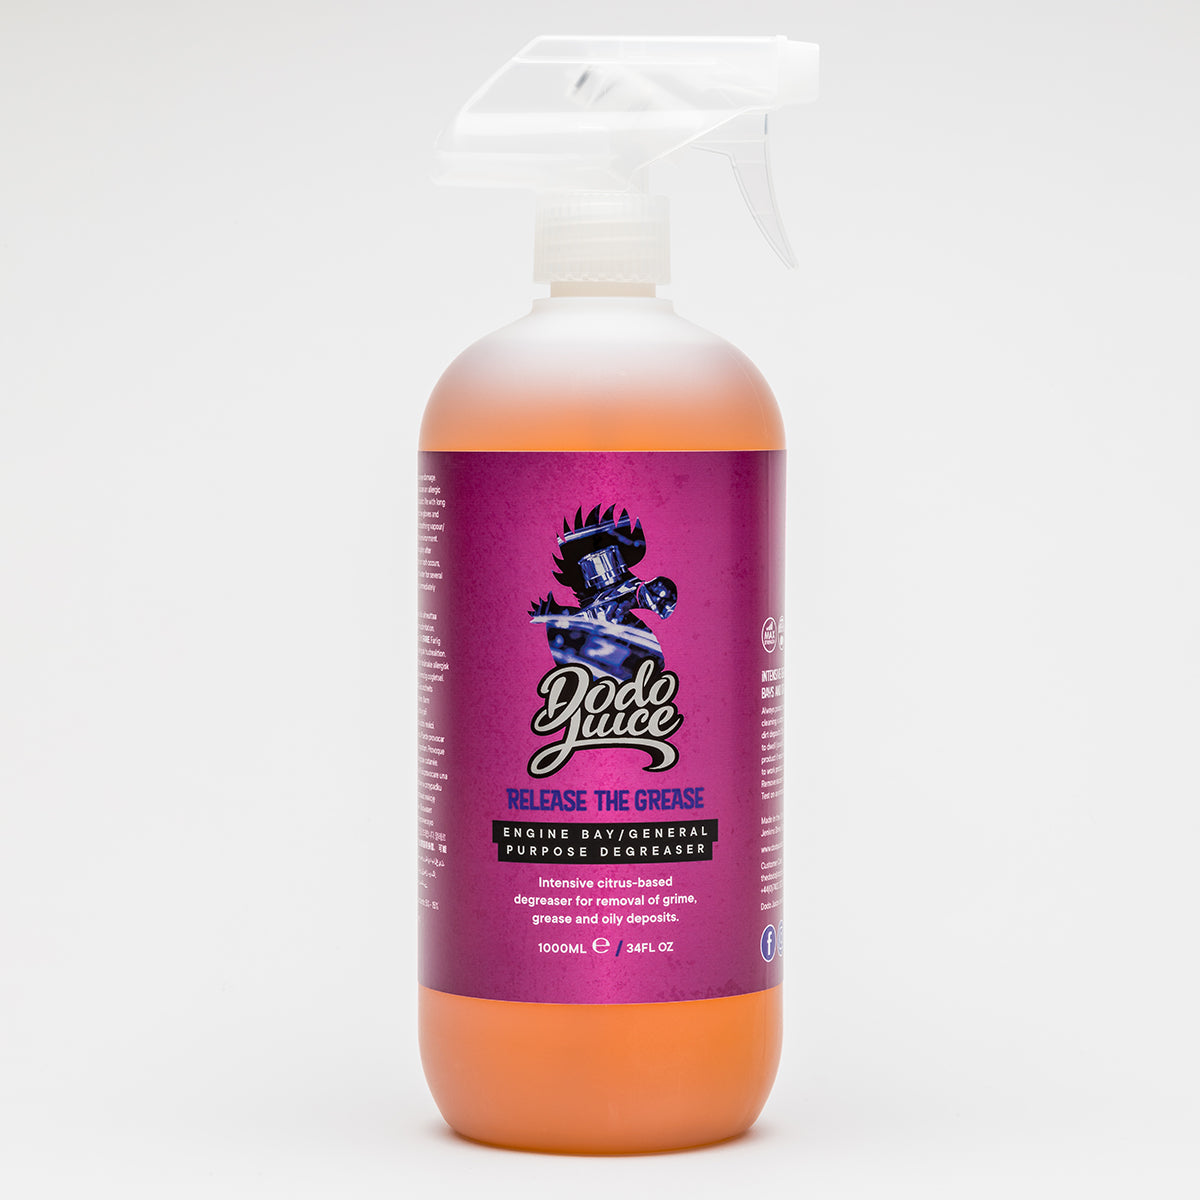 Release the Grease 1 litre spray - engine bay cleaner/strong citrus degreaser